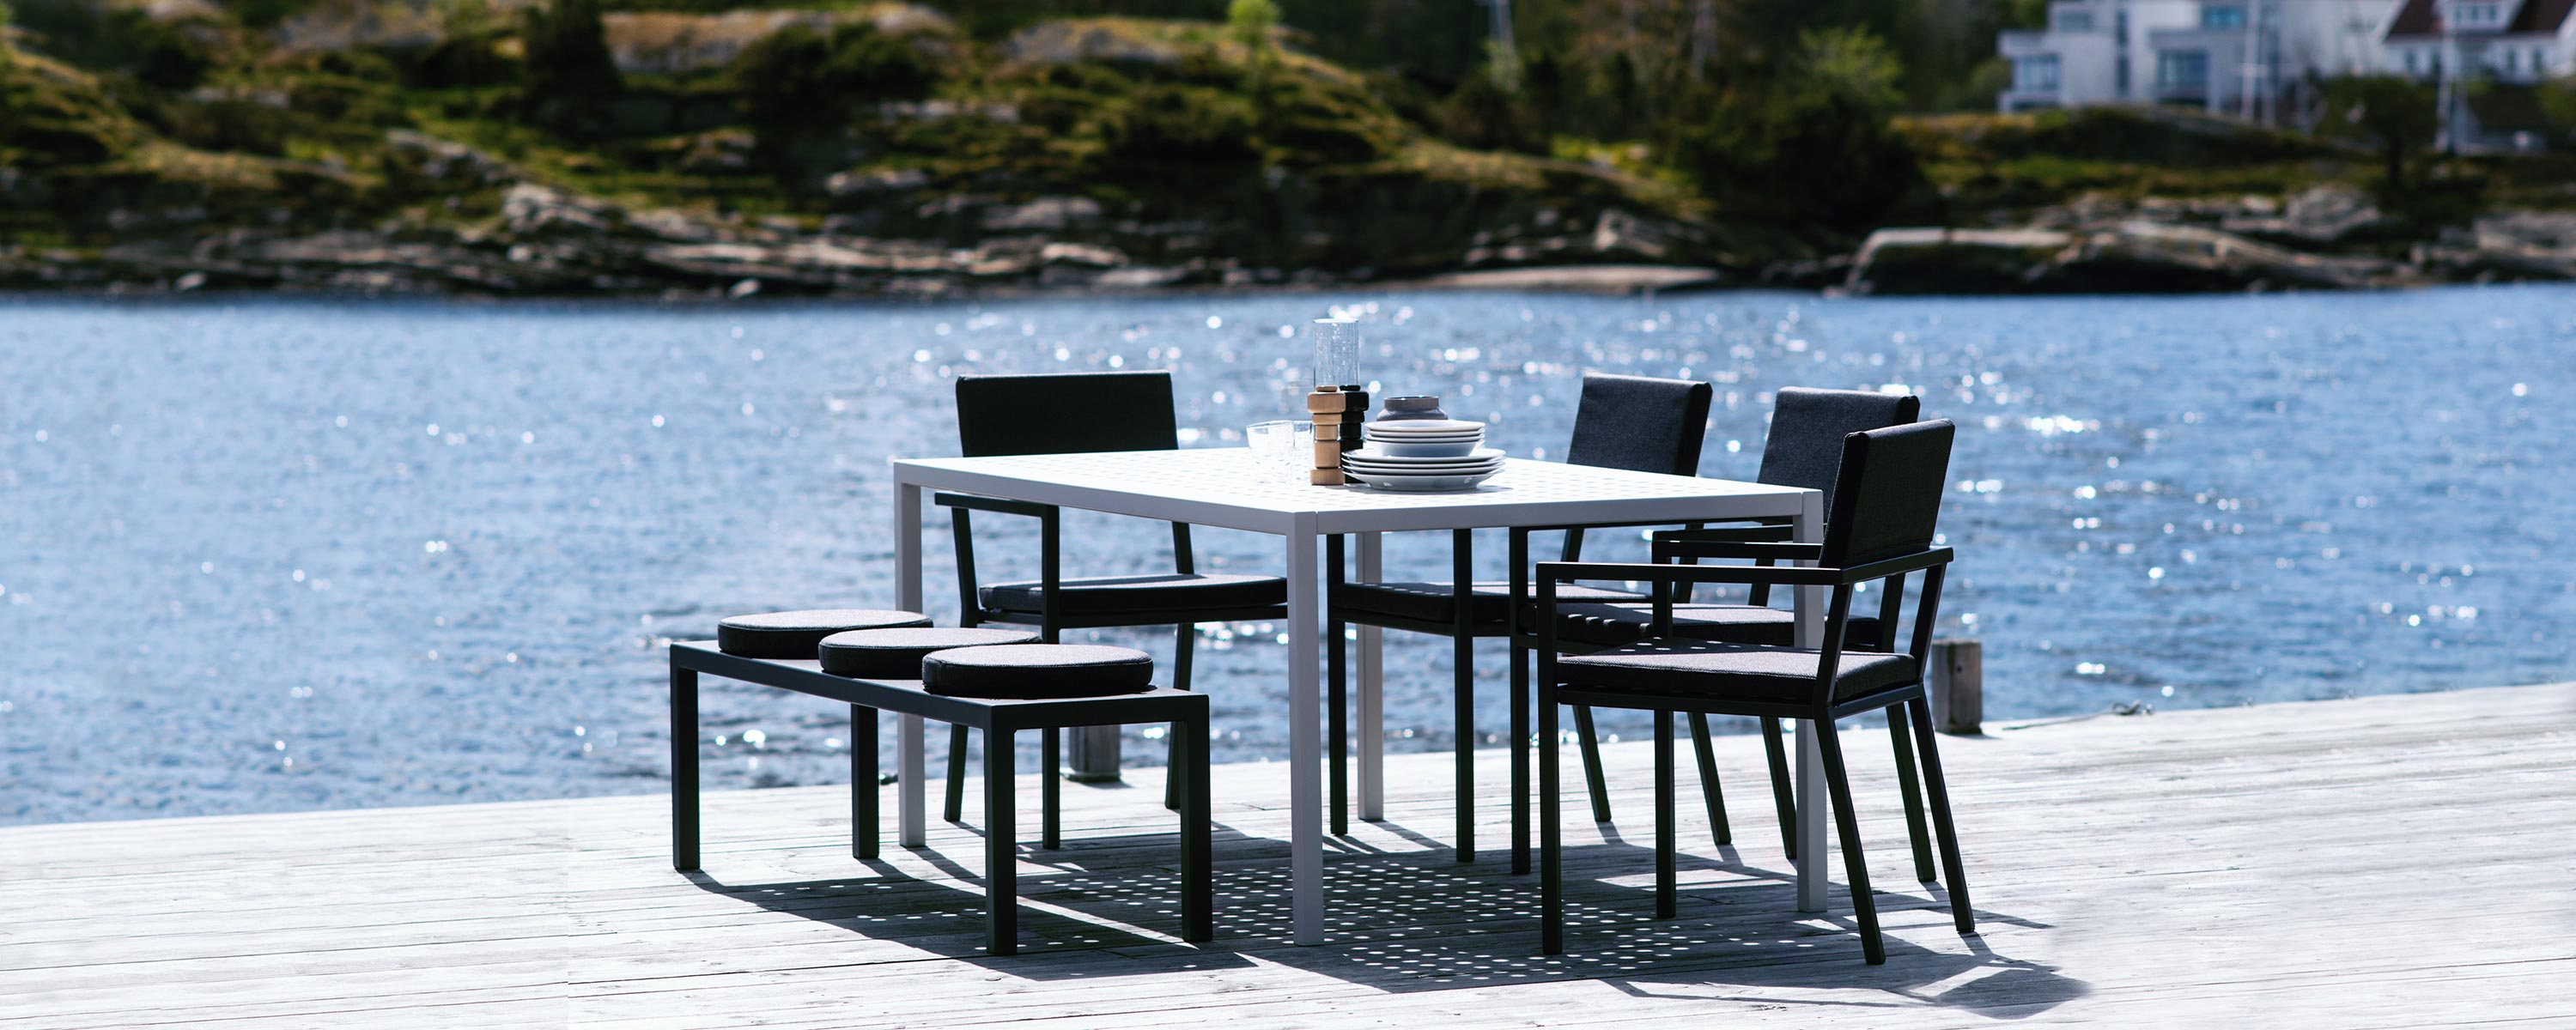 Sundays Design, outdoor furniture